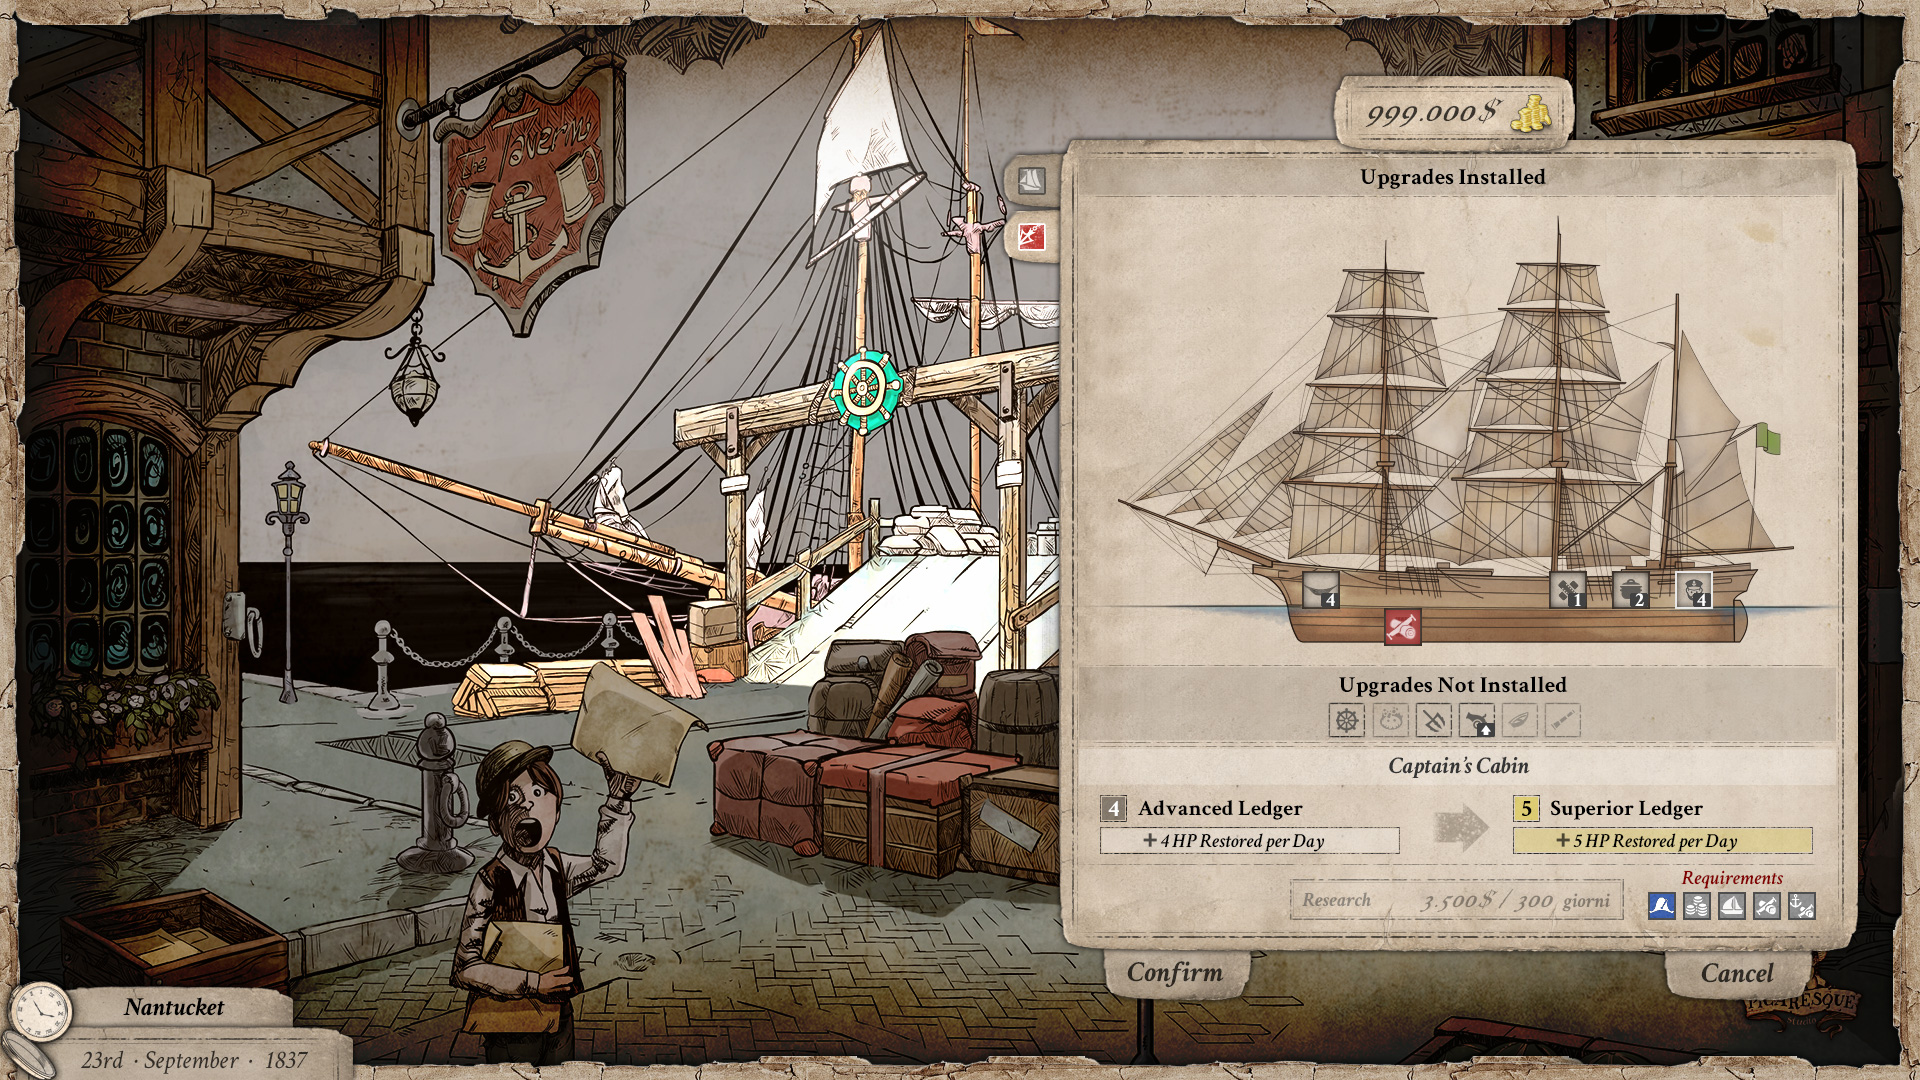 Shipwright_Upgrades3